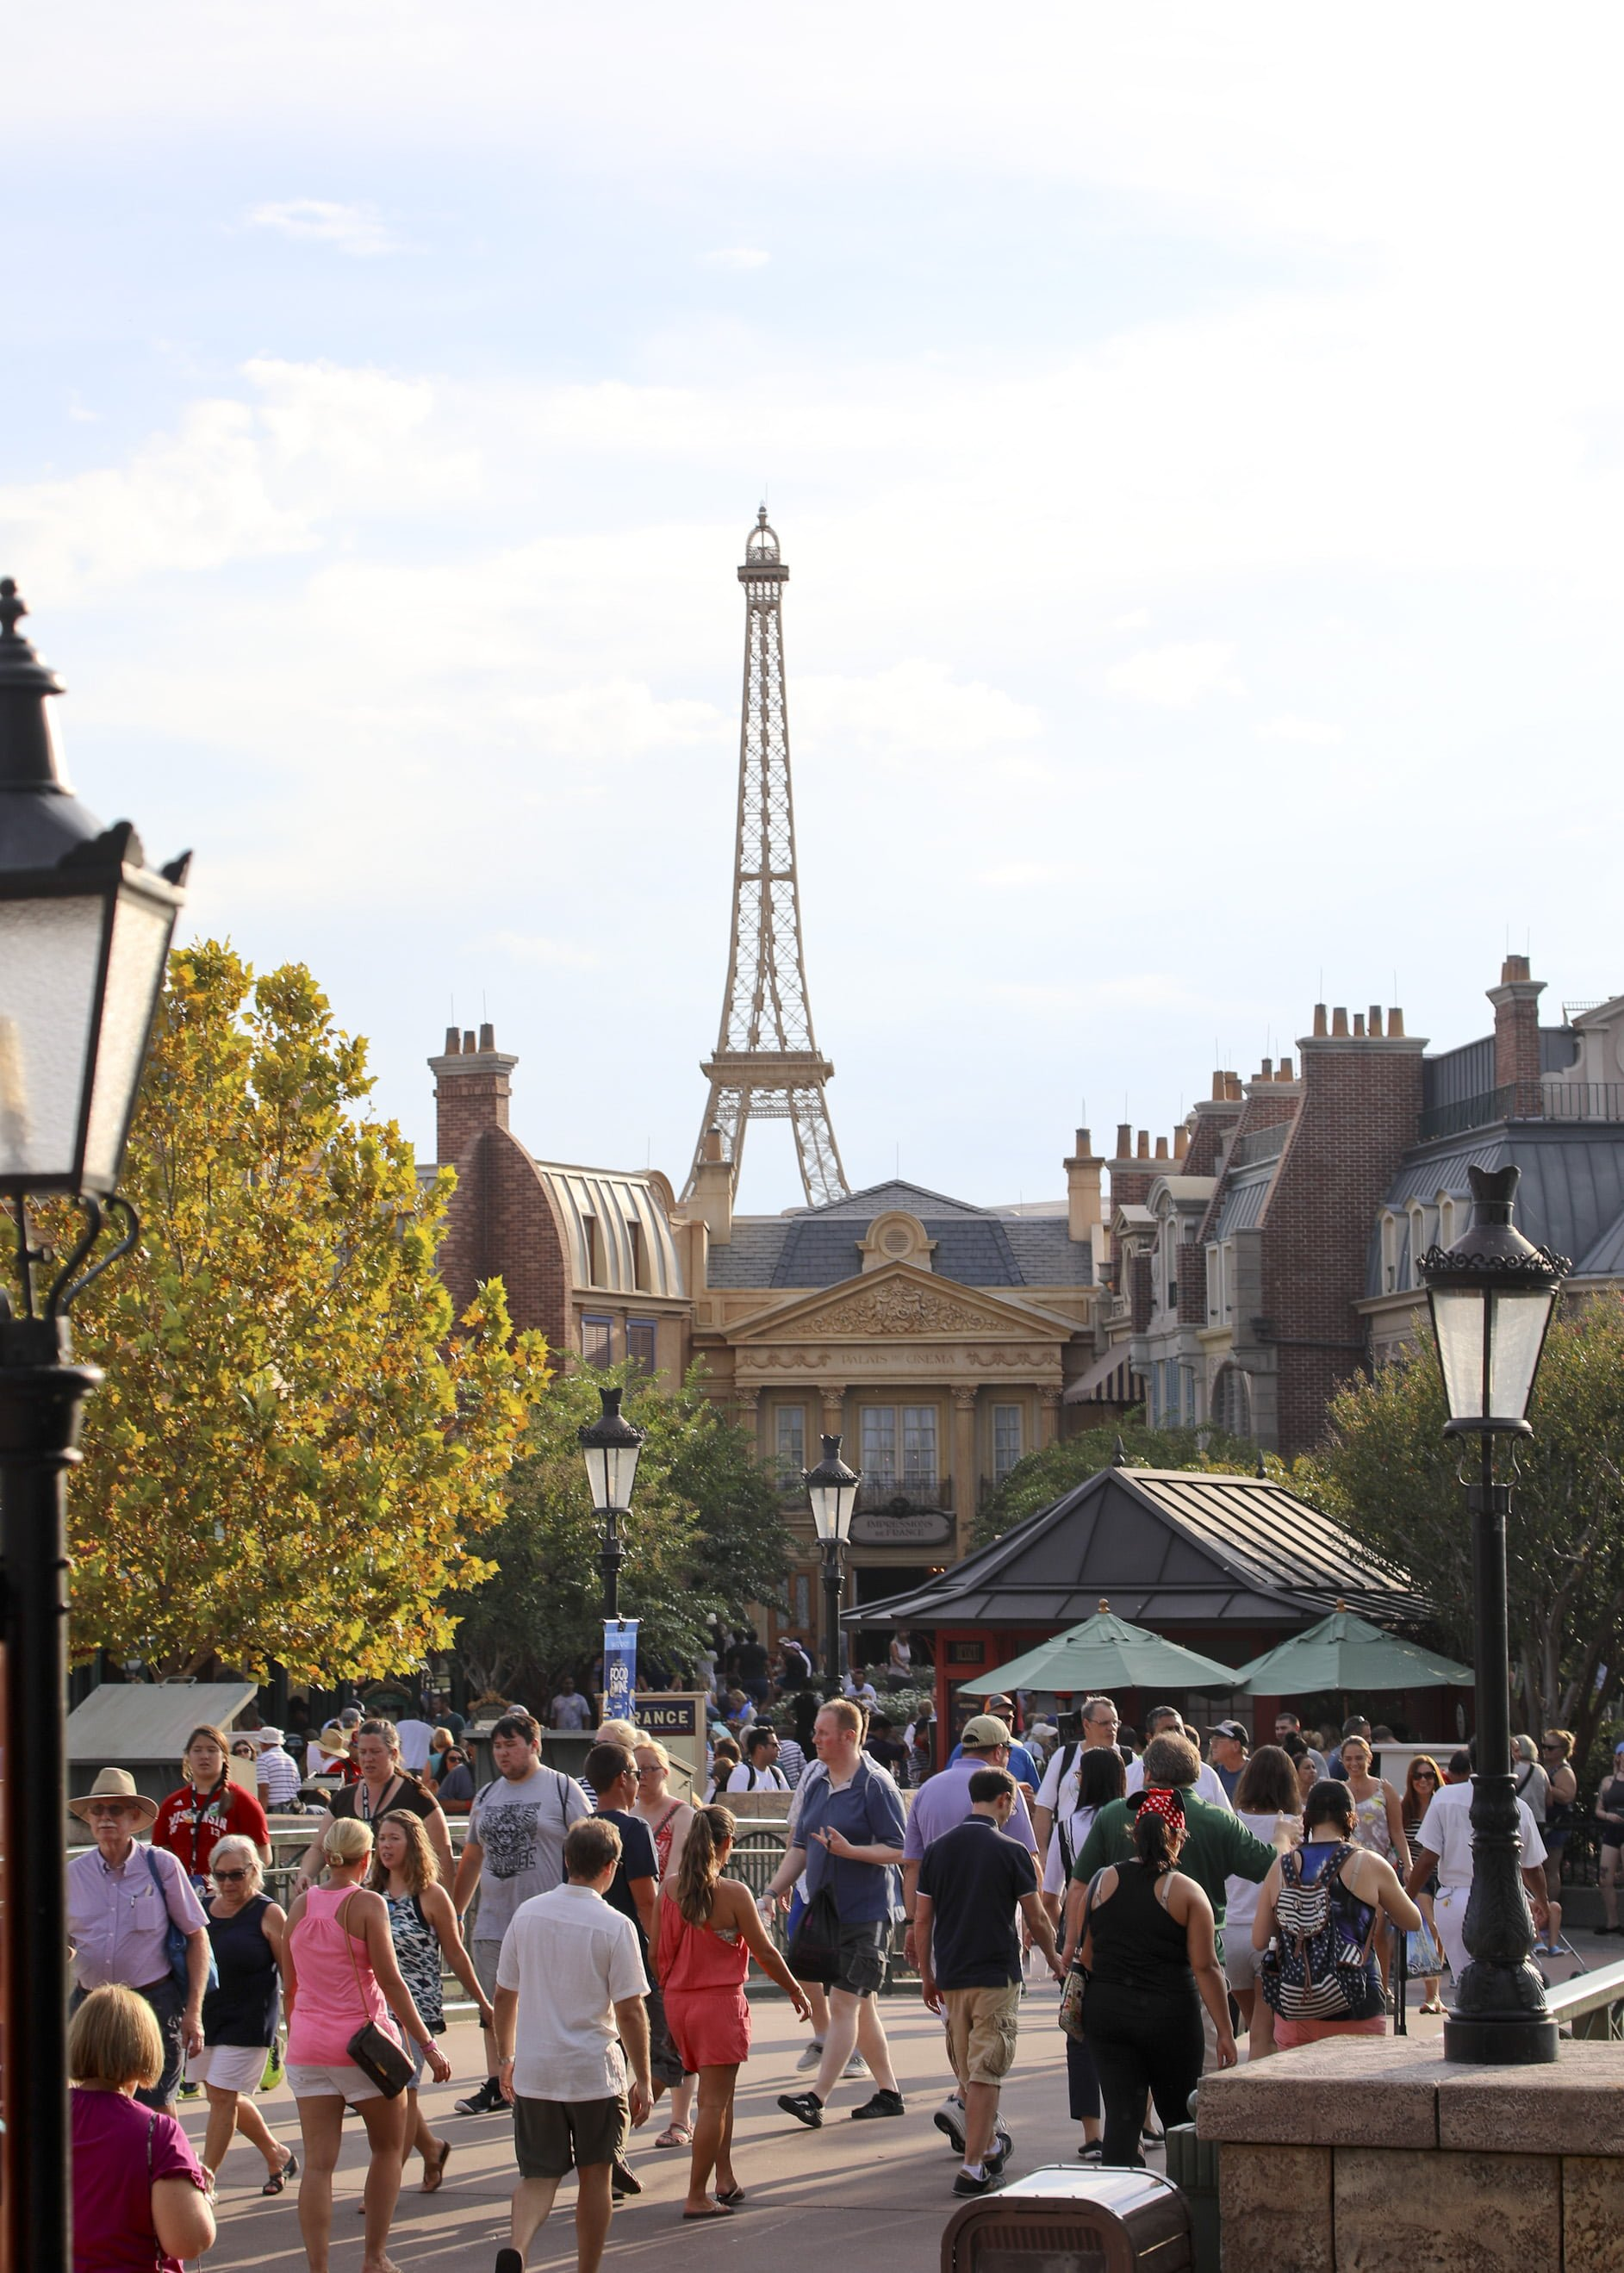 France in Epcot